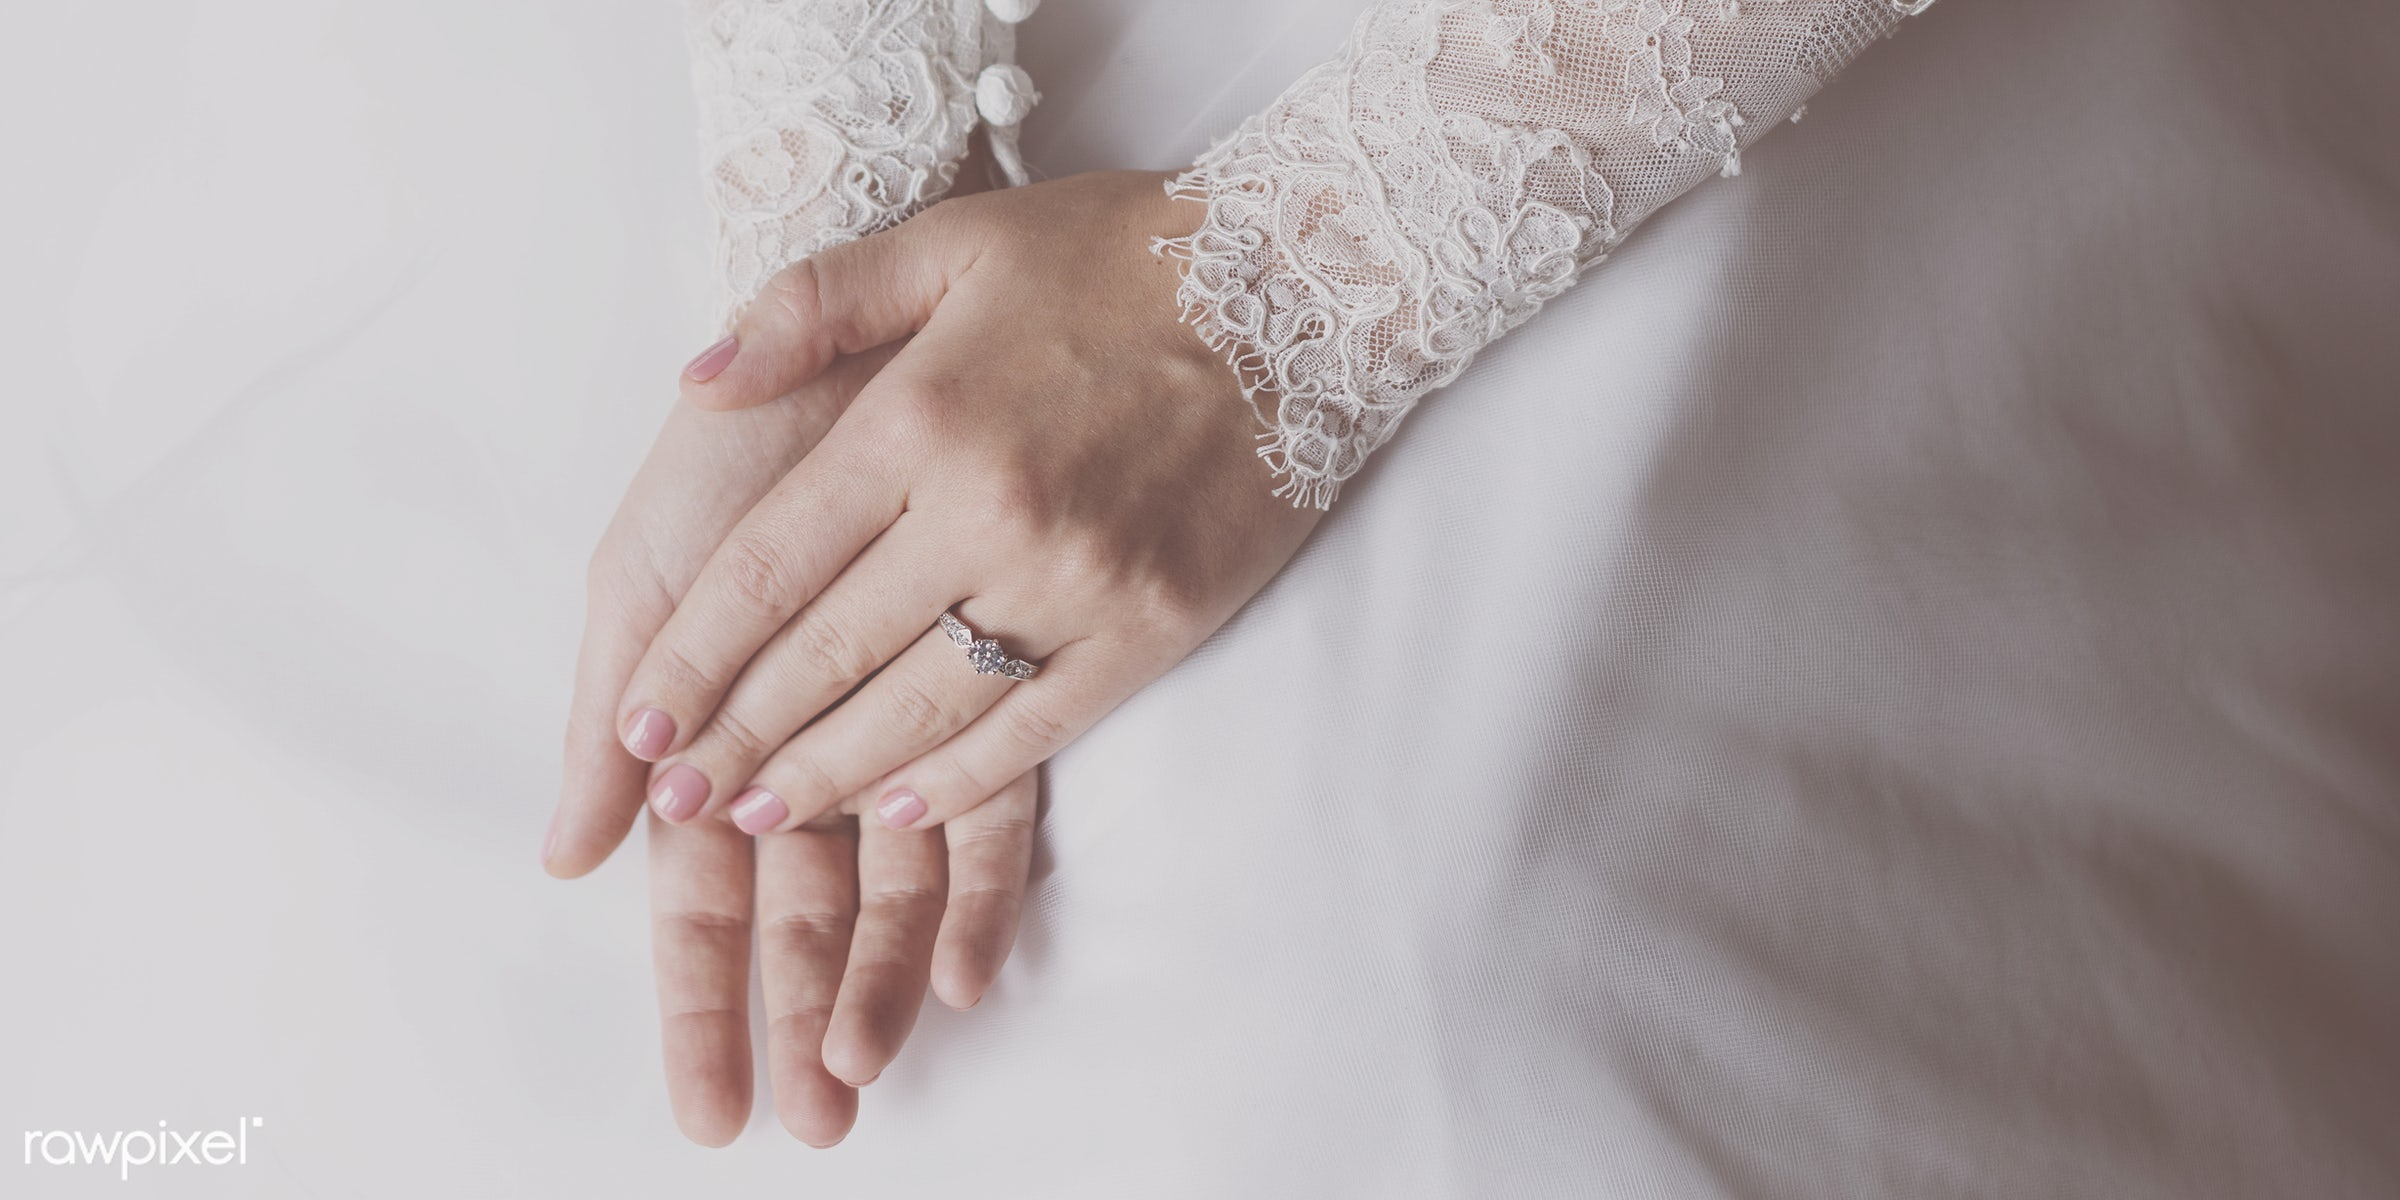 expression, person, show, people, married, hands, woman, showing, bride, ring, elegance, beautiful, happiness, adult,...